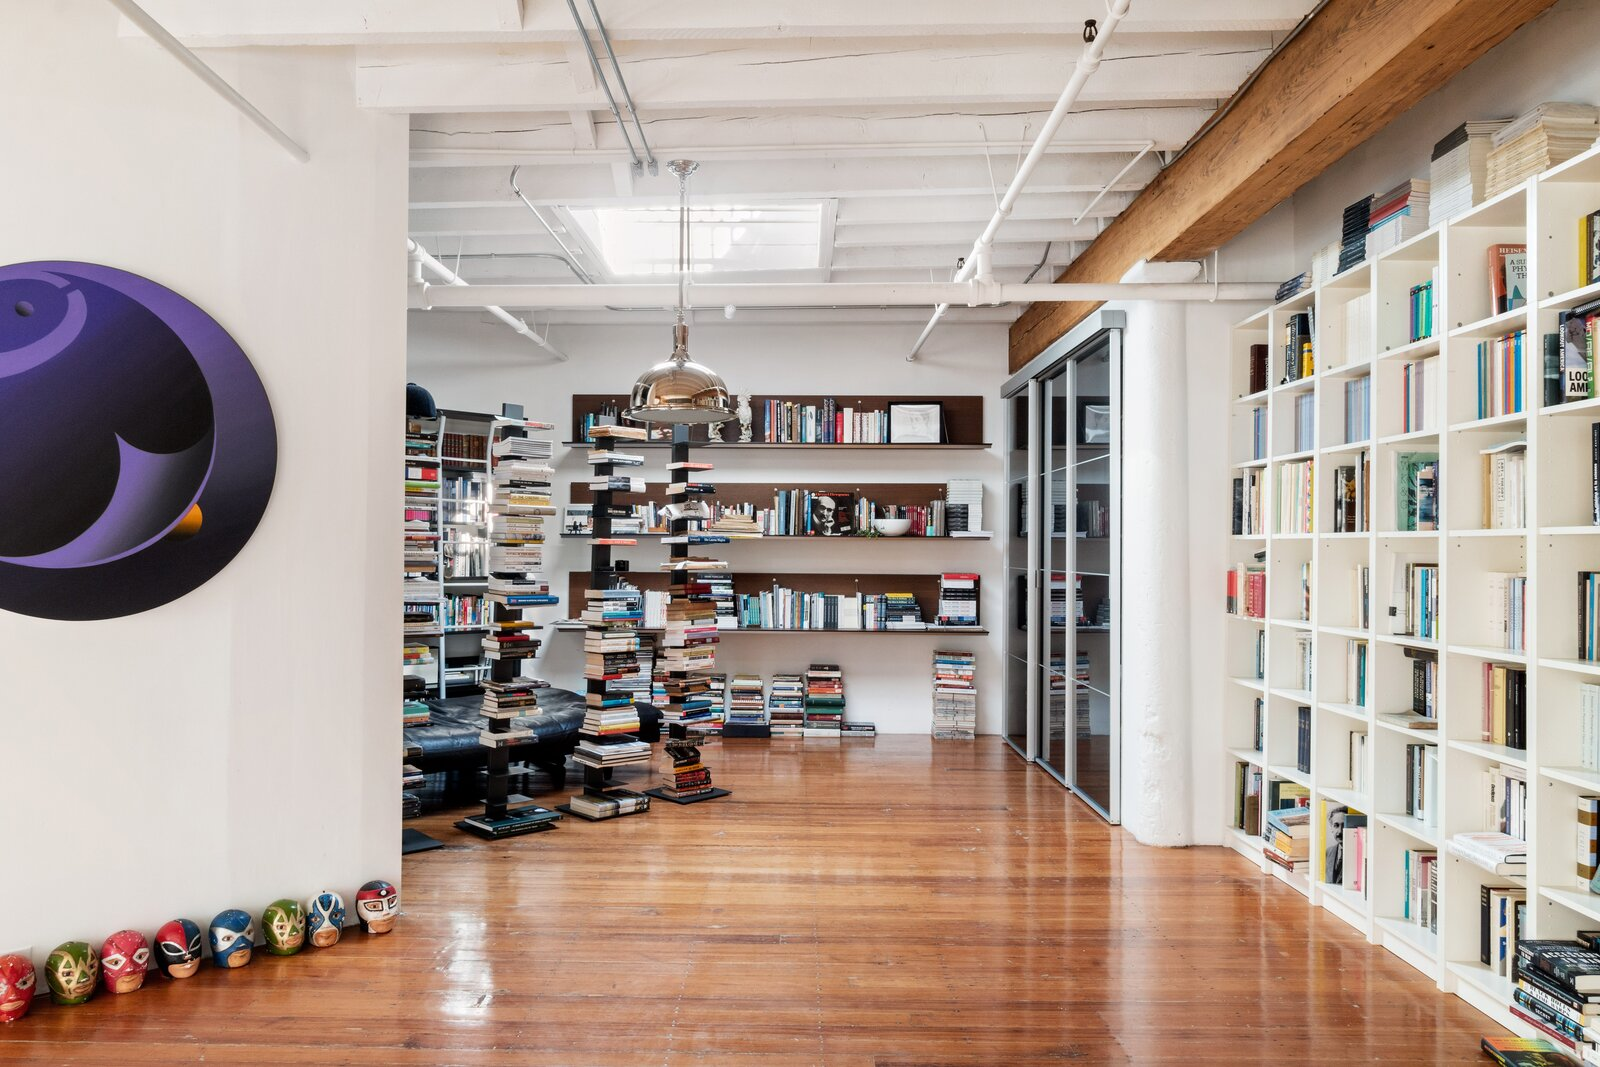 The library features floor-to-ceiling built in shelving and has a skylight roof